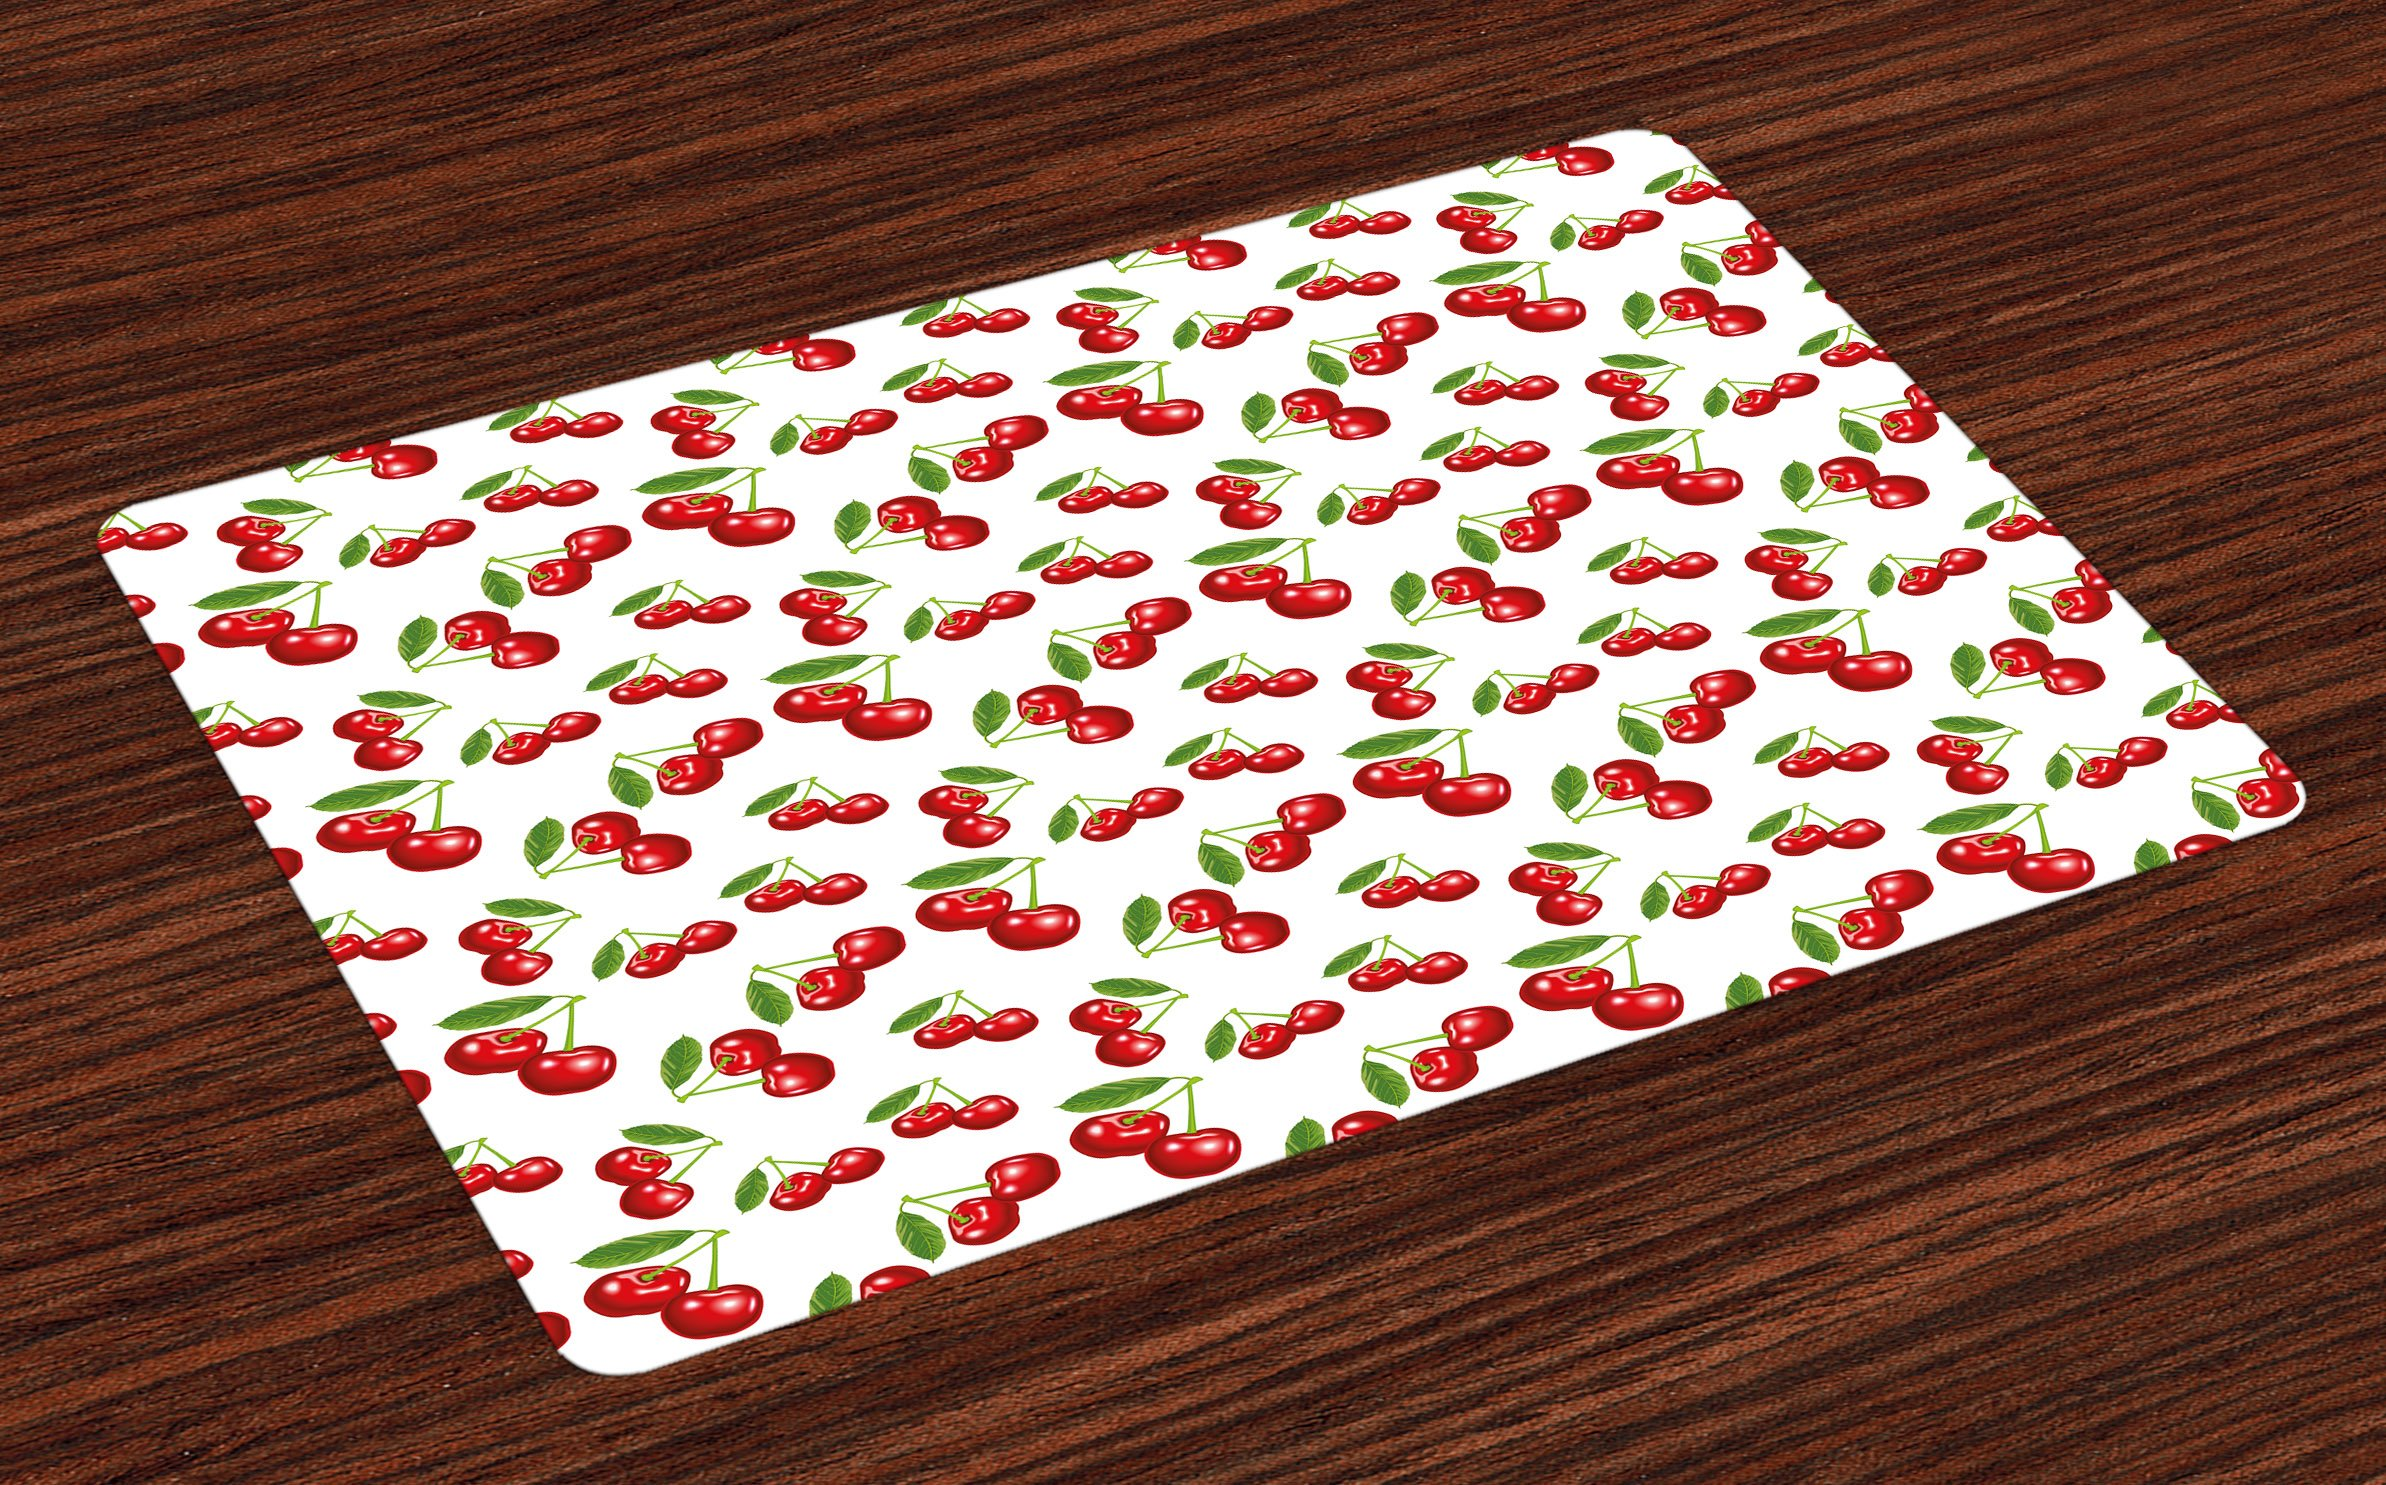 Ambesonne Kitchen Place Mats Set of 4, Cherry Pattern Design Fresh Berry Fruit Summer Garden Macro Digital Print, Washable Fabric Placemats for Dining Room Kitchen Table Decor, Red Green and White